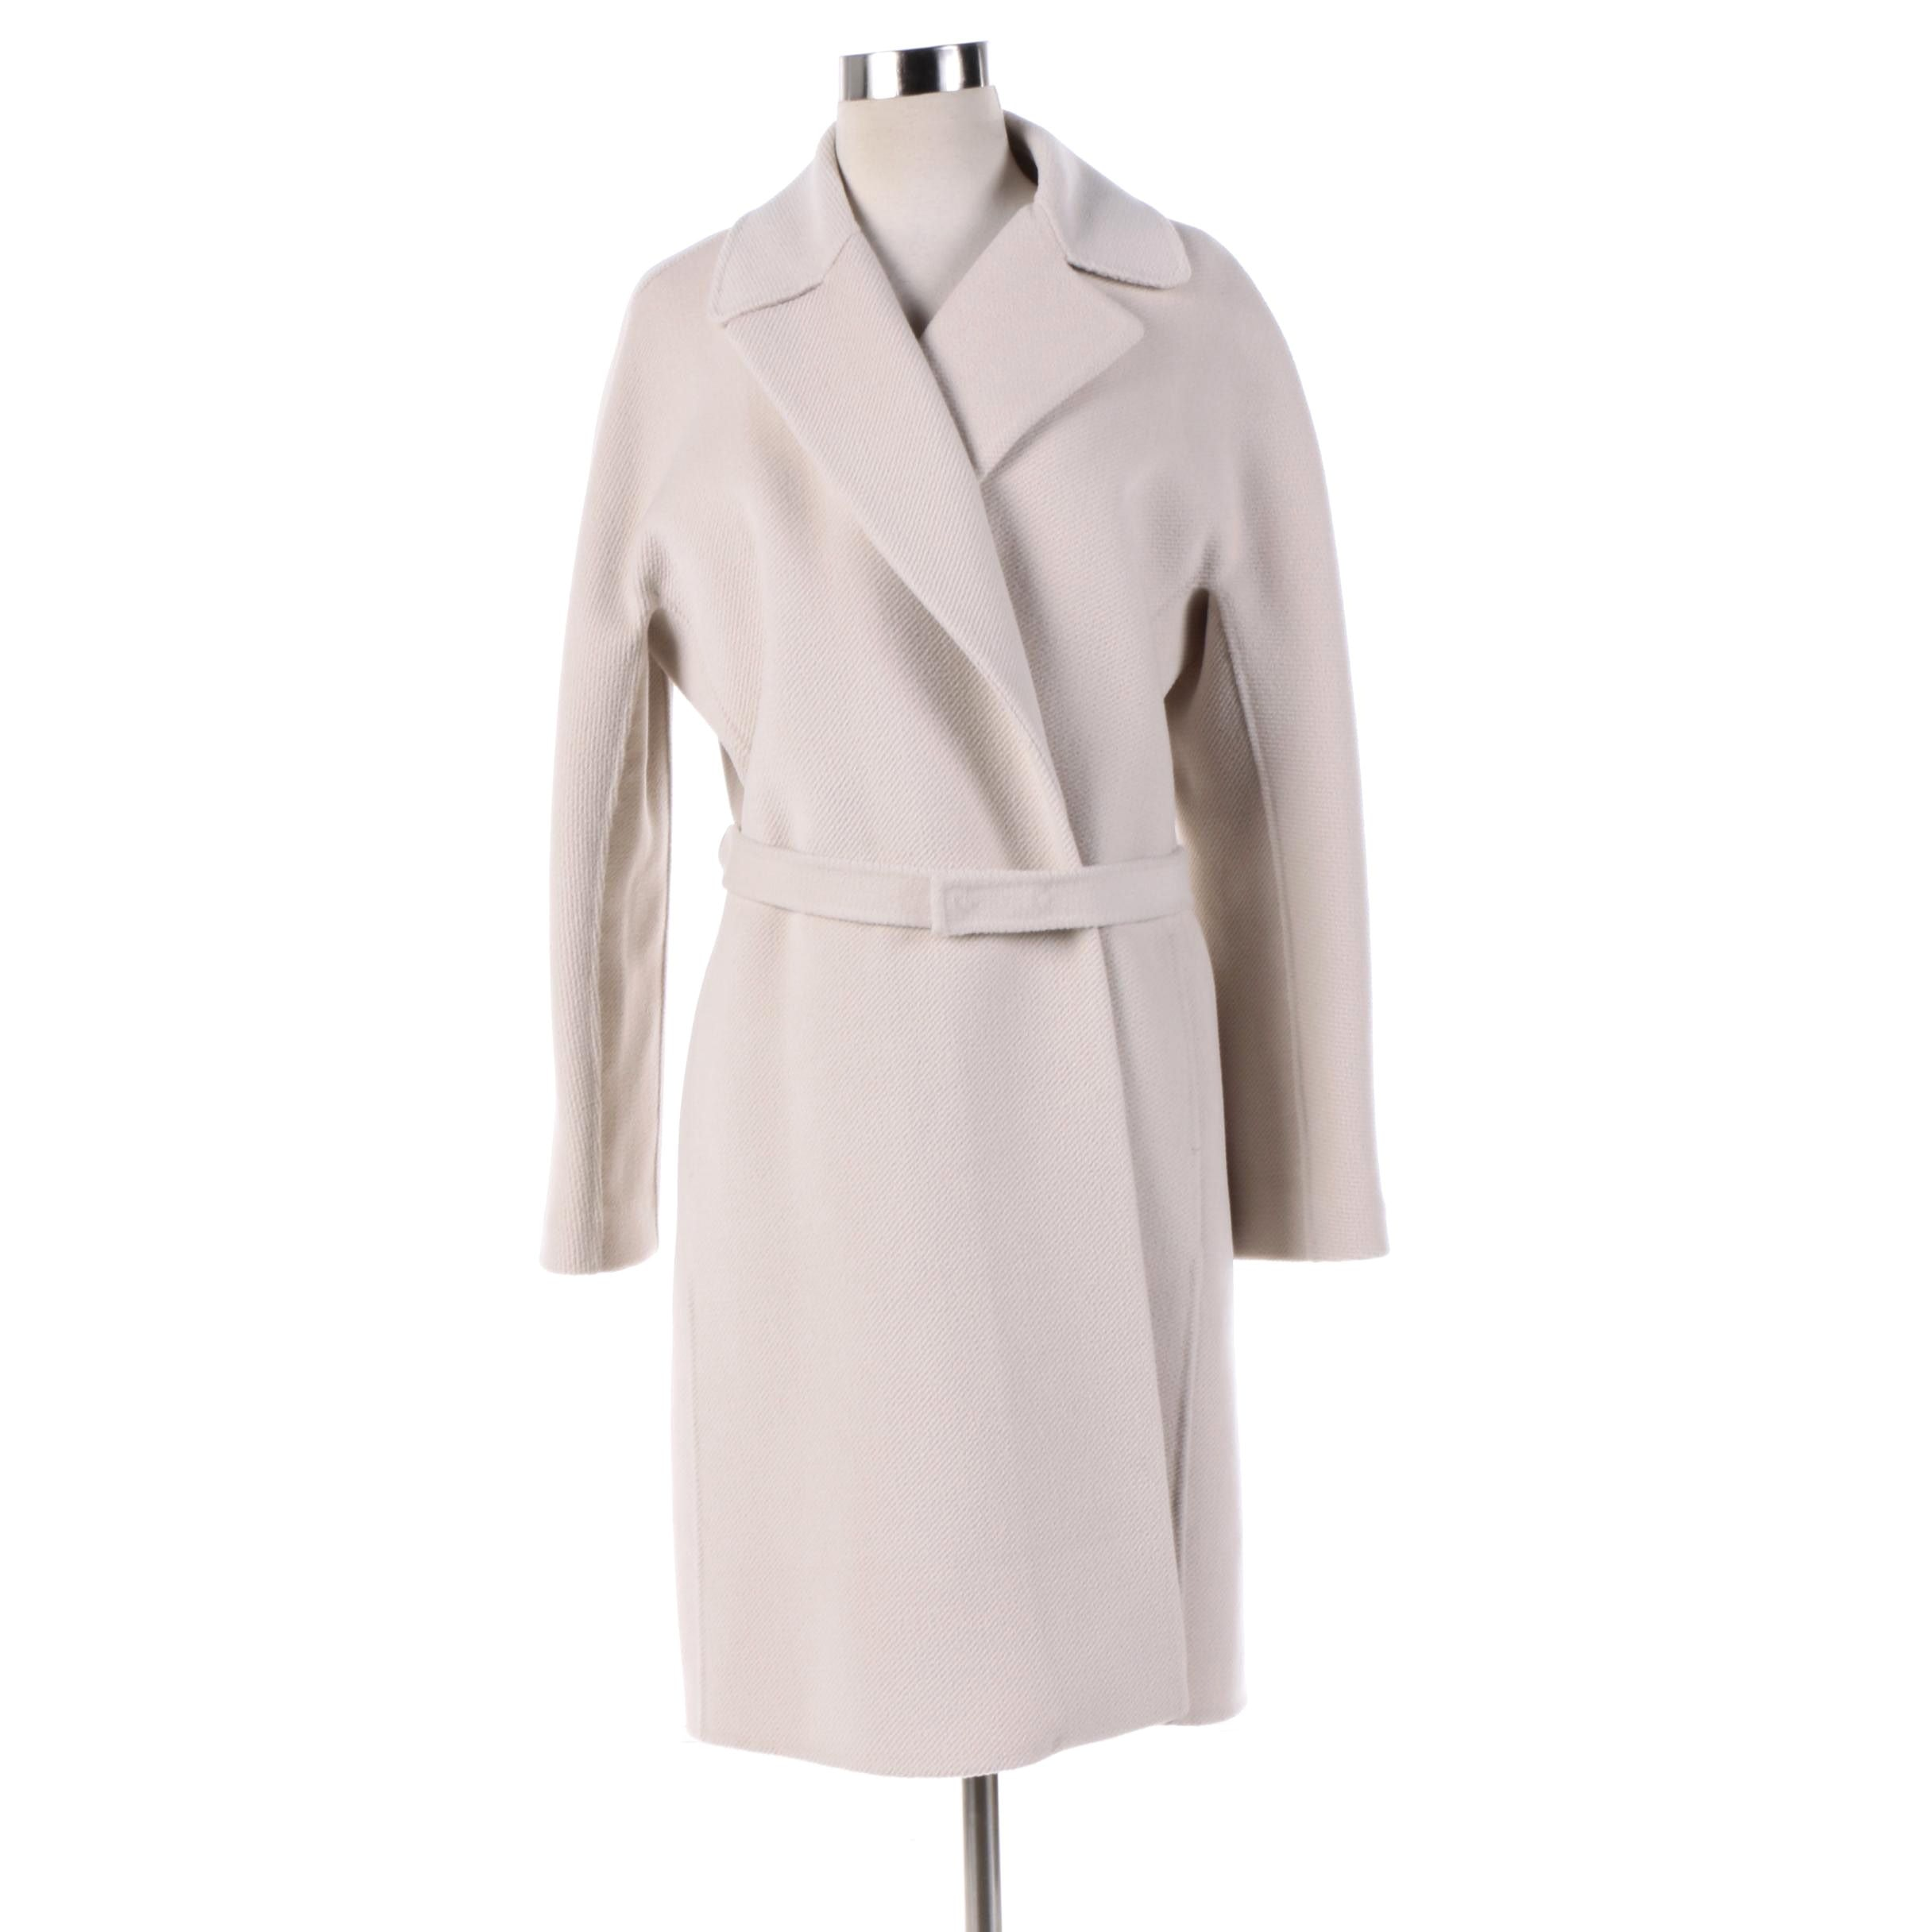 Women's Lafayette 148 New York Off-White Wool Blend Coat